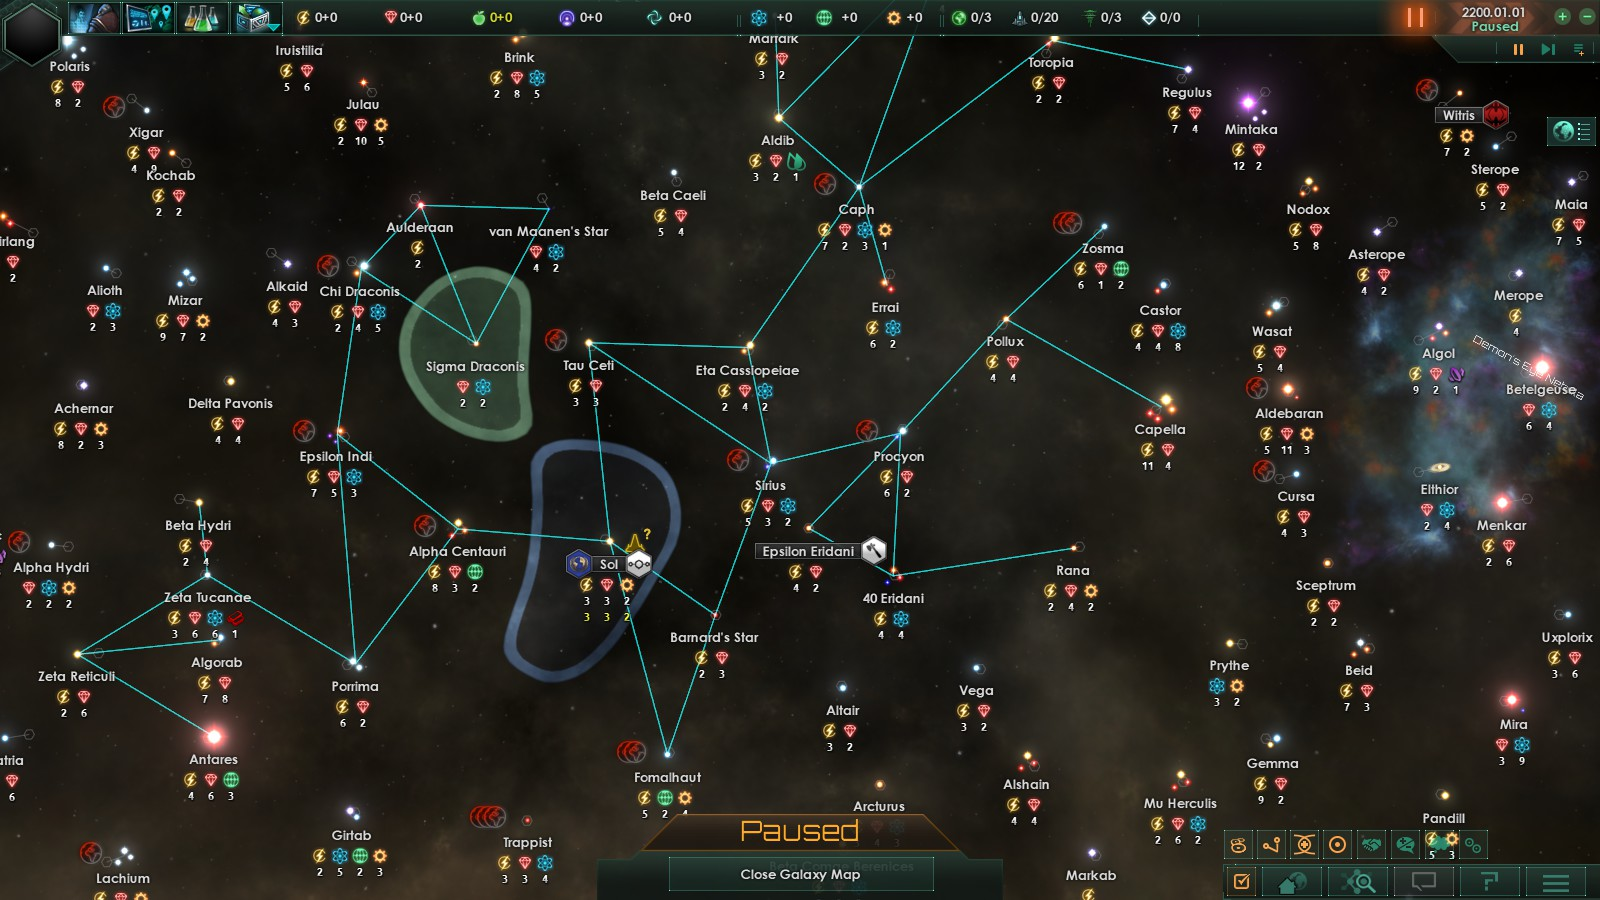 A Stellaris screenshot showing off the galaxy map with a realistic set of stars